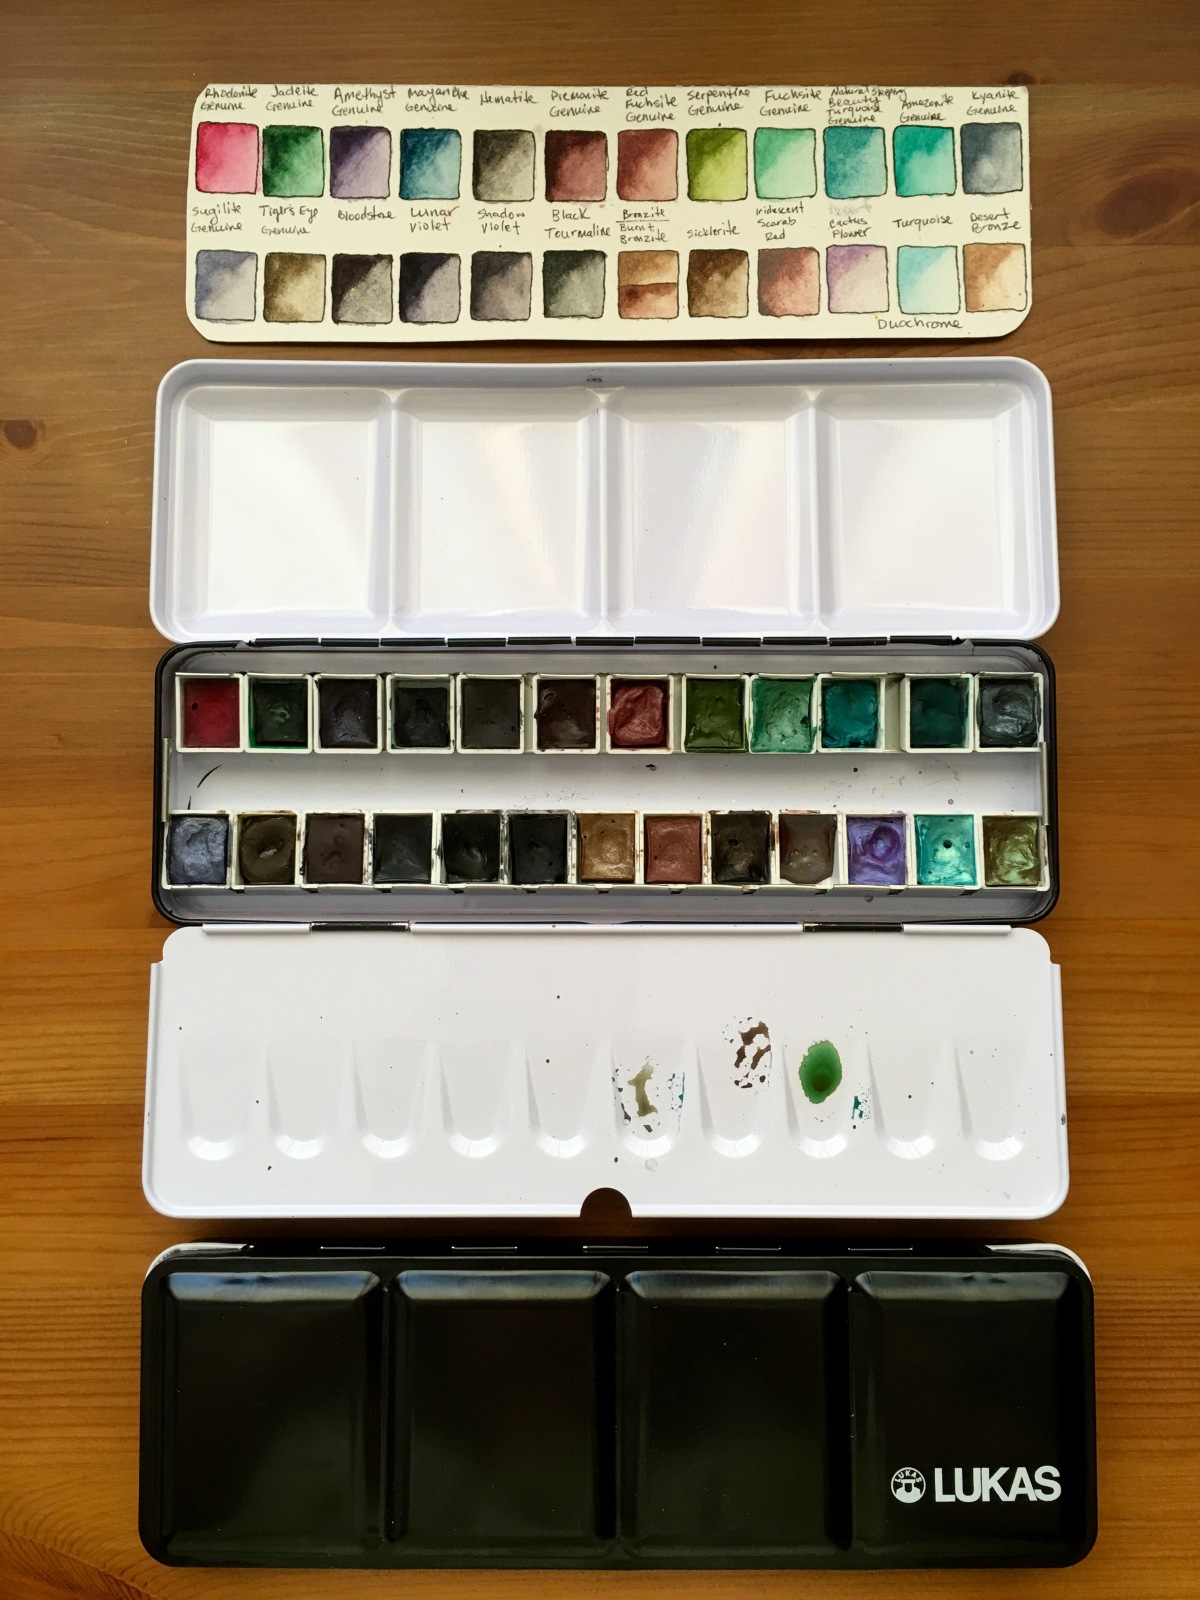 Large black mental watercolor pallet filled with Daniel Smith Watercolor and Lucas metal palette.